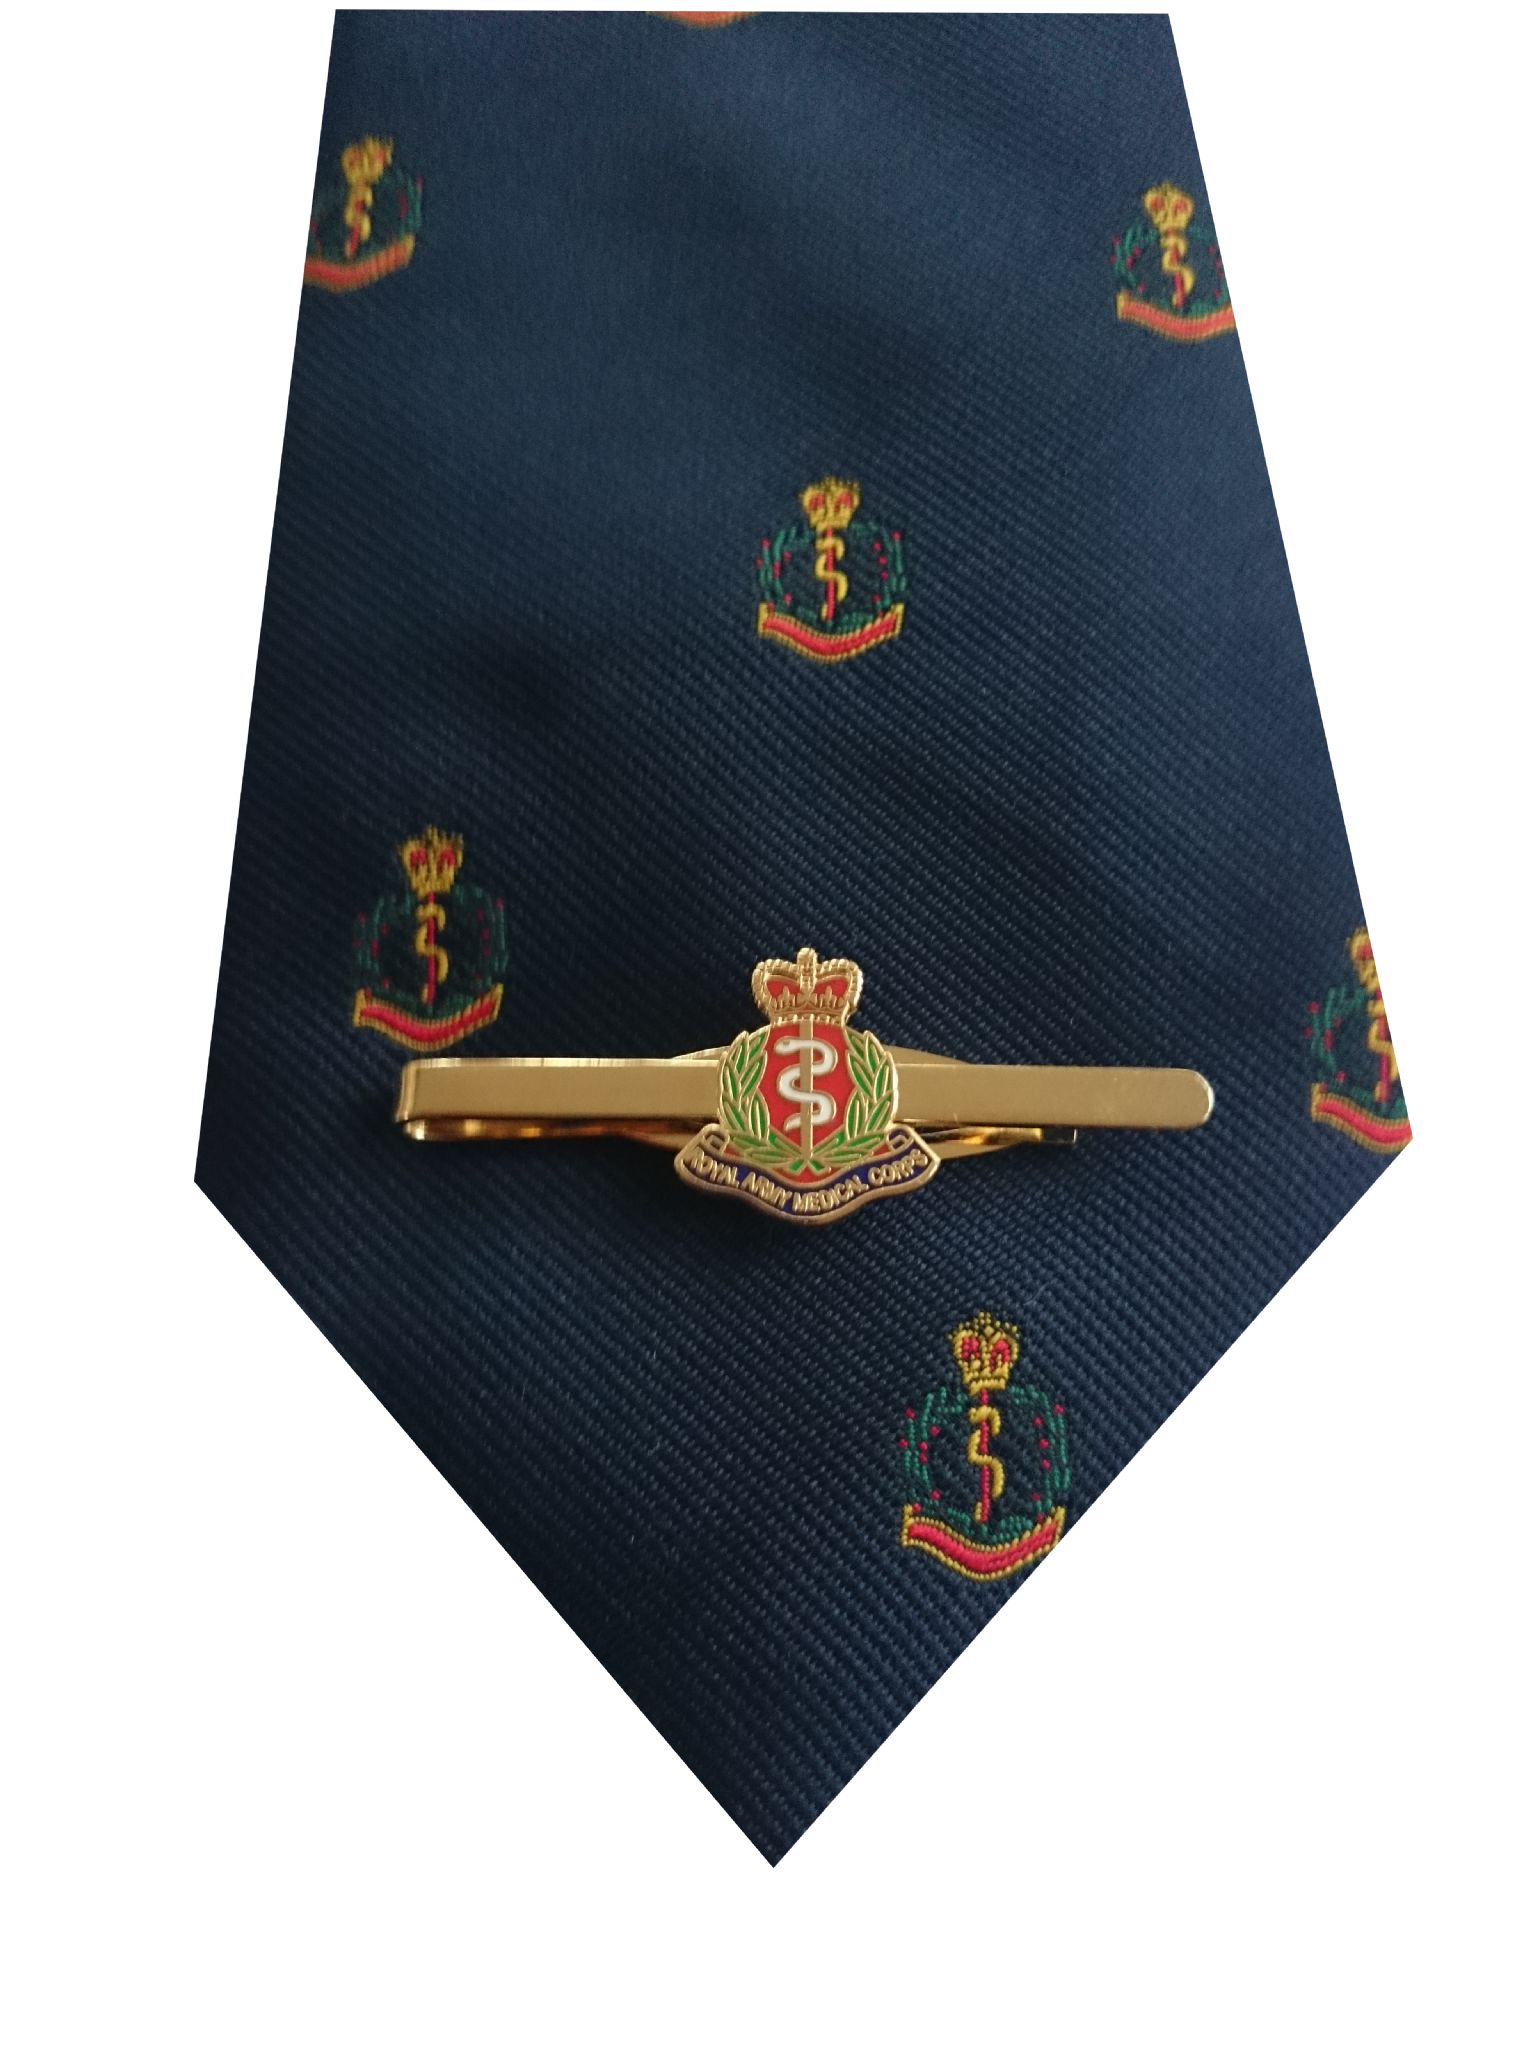 Ramc royal army medical corps tie tie clip set p285 ccuart Images